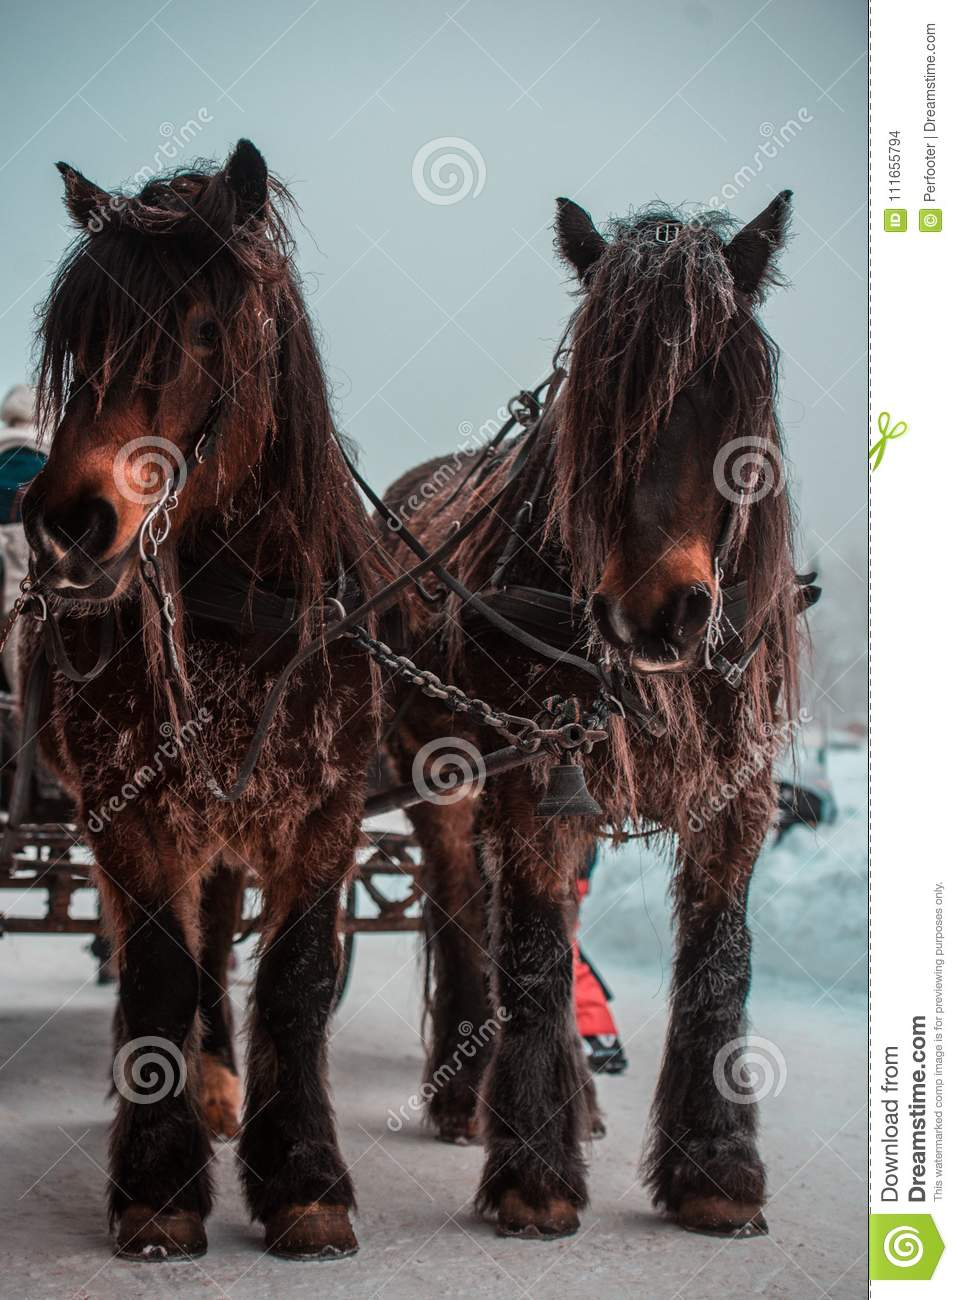 Beautiful Horses During Winter Pulling Chariot Stock Photo Image Of Pets Chains 111655794